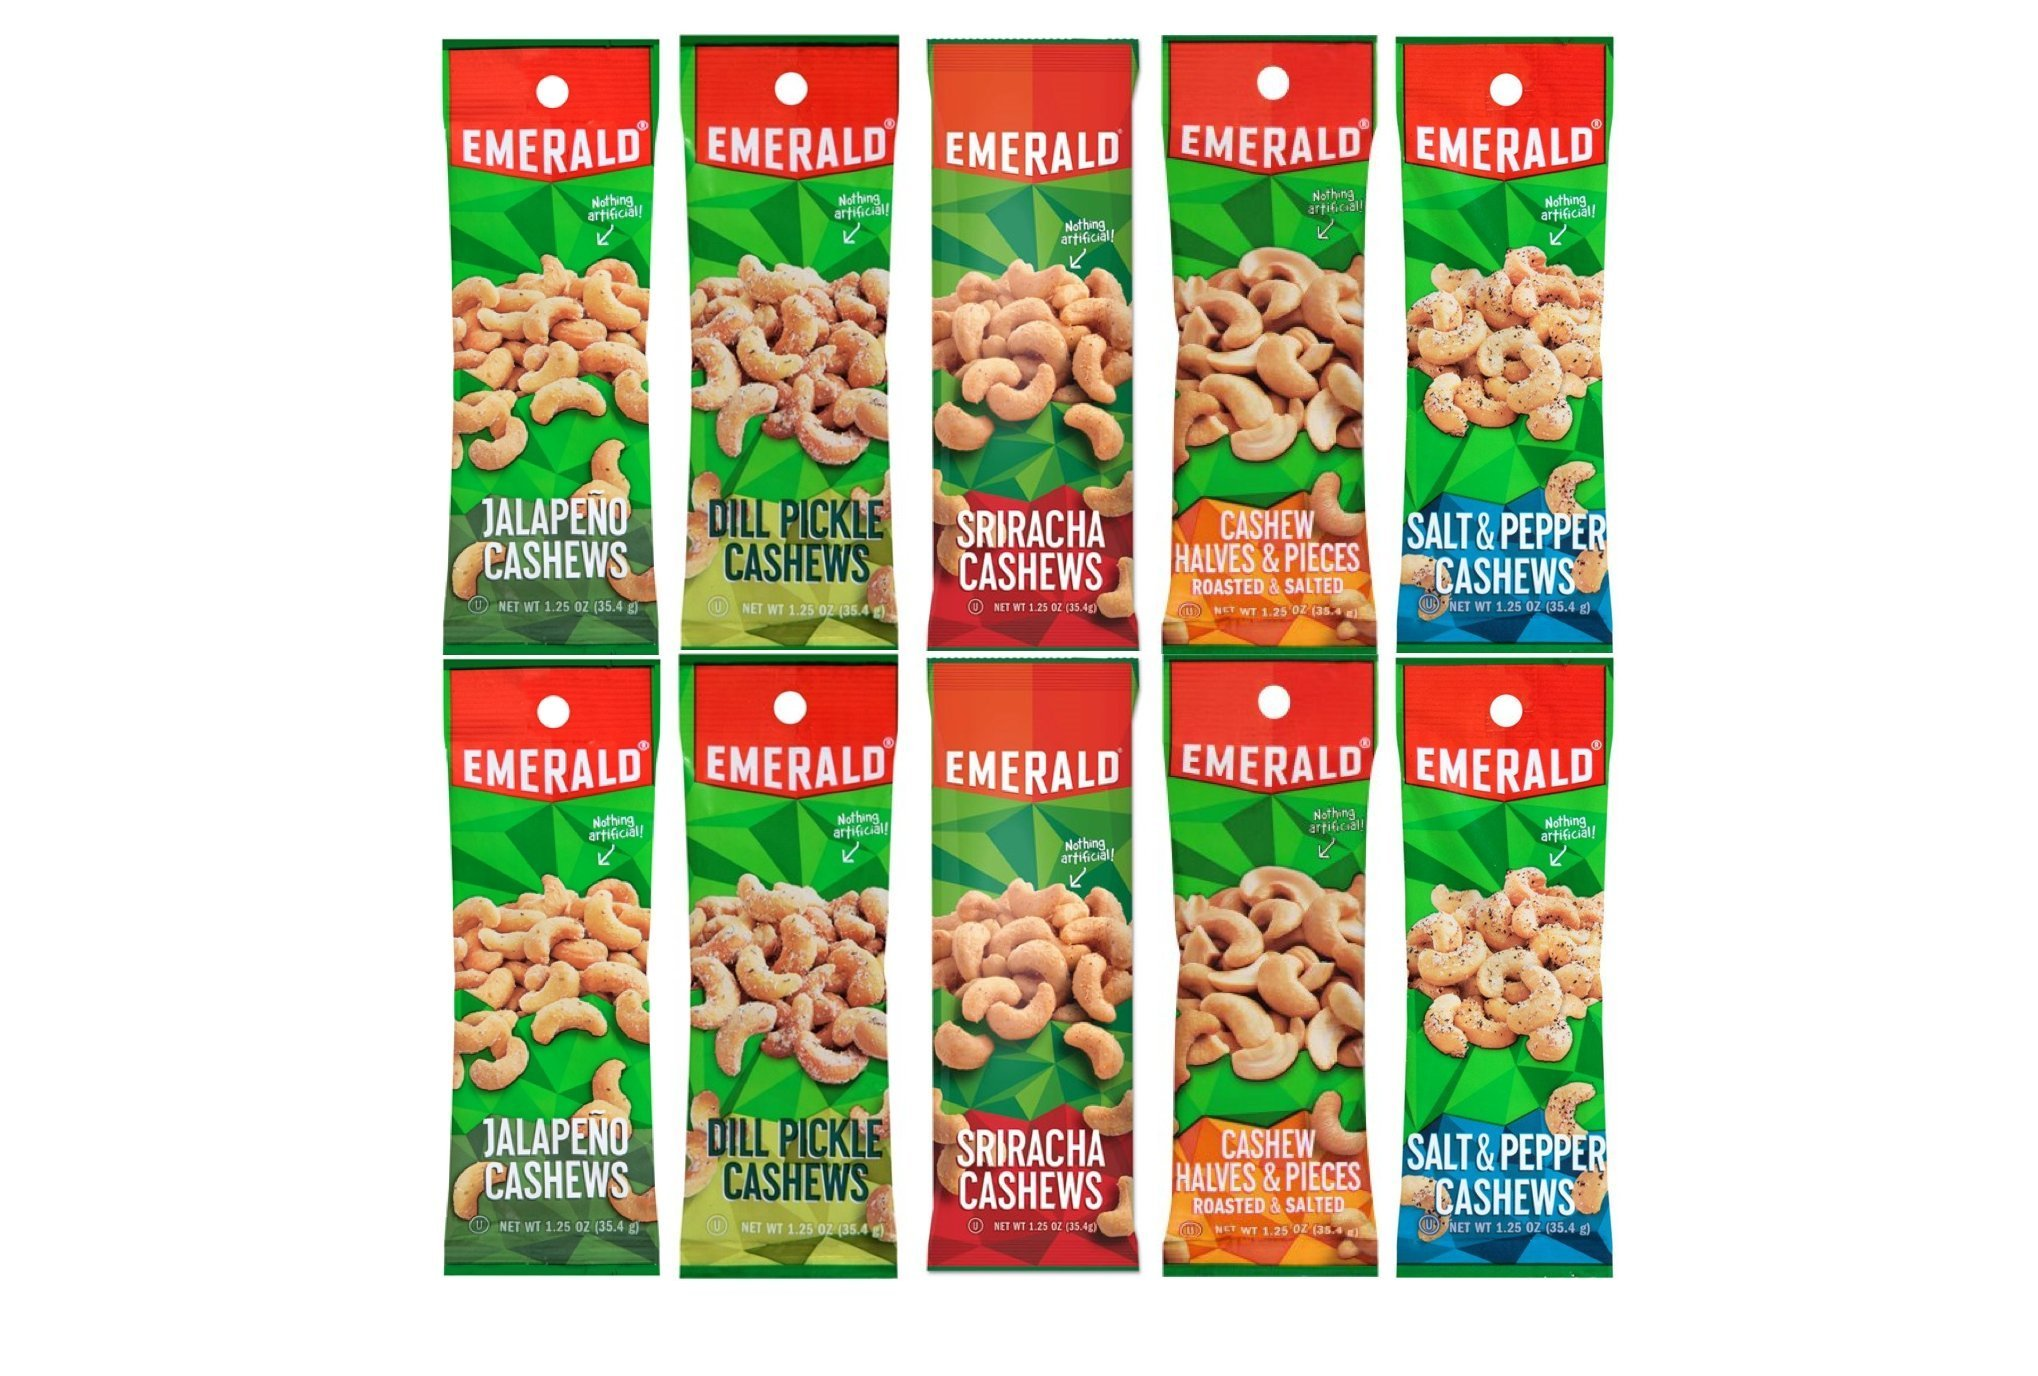 Emerald Snacks Flavored Cashews Variety Bundle - Assortment Featuring Dill Pickle, Jalapeno, Salt & Pepper, Sriracha and Roasted & Salted by